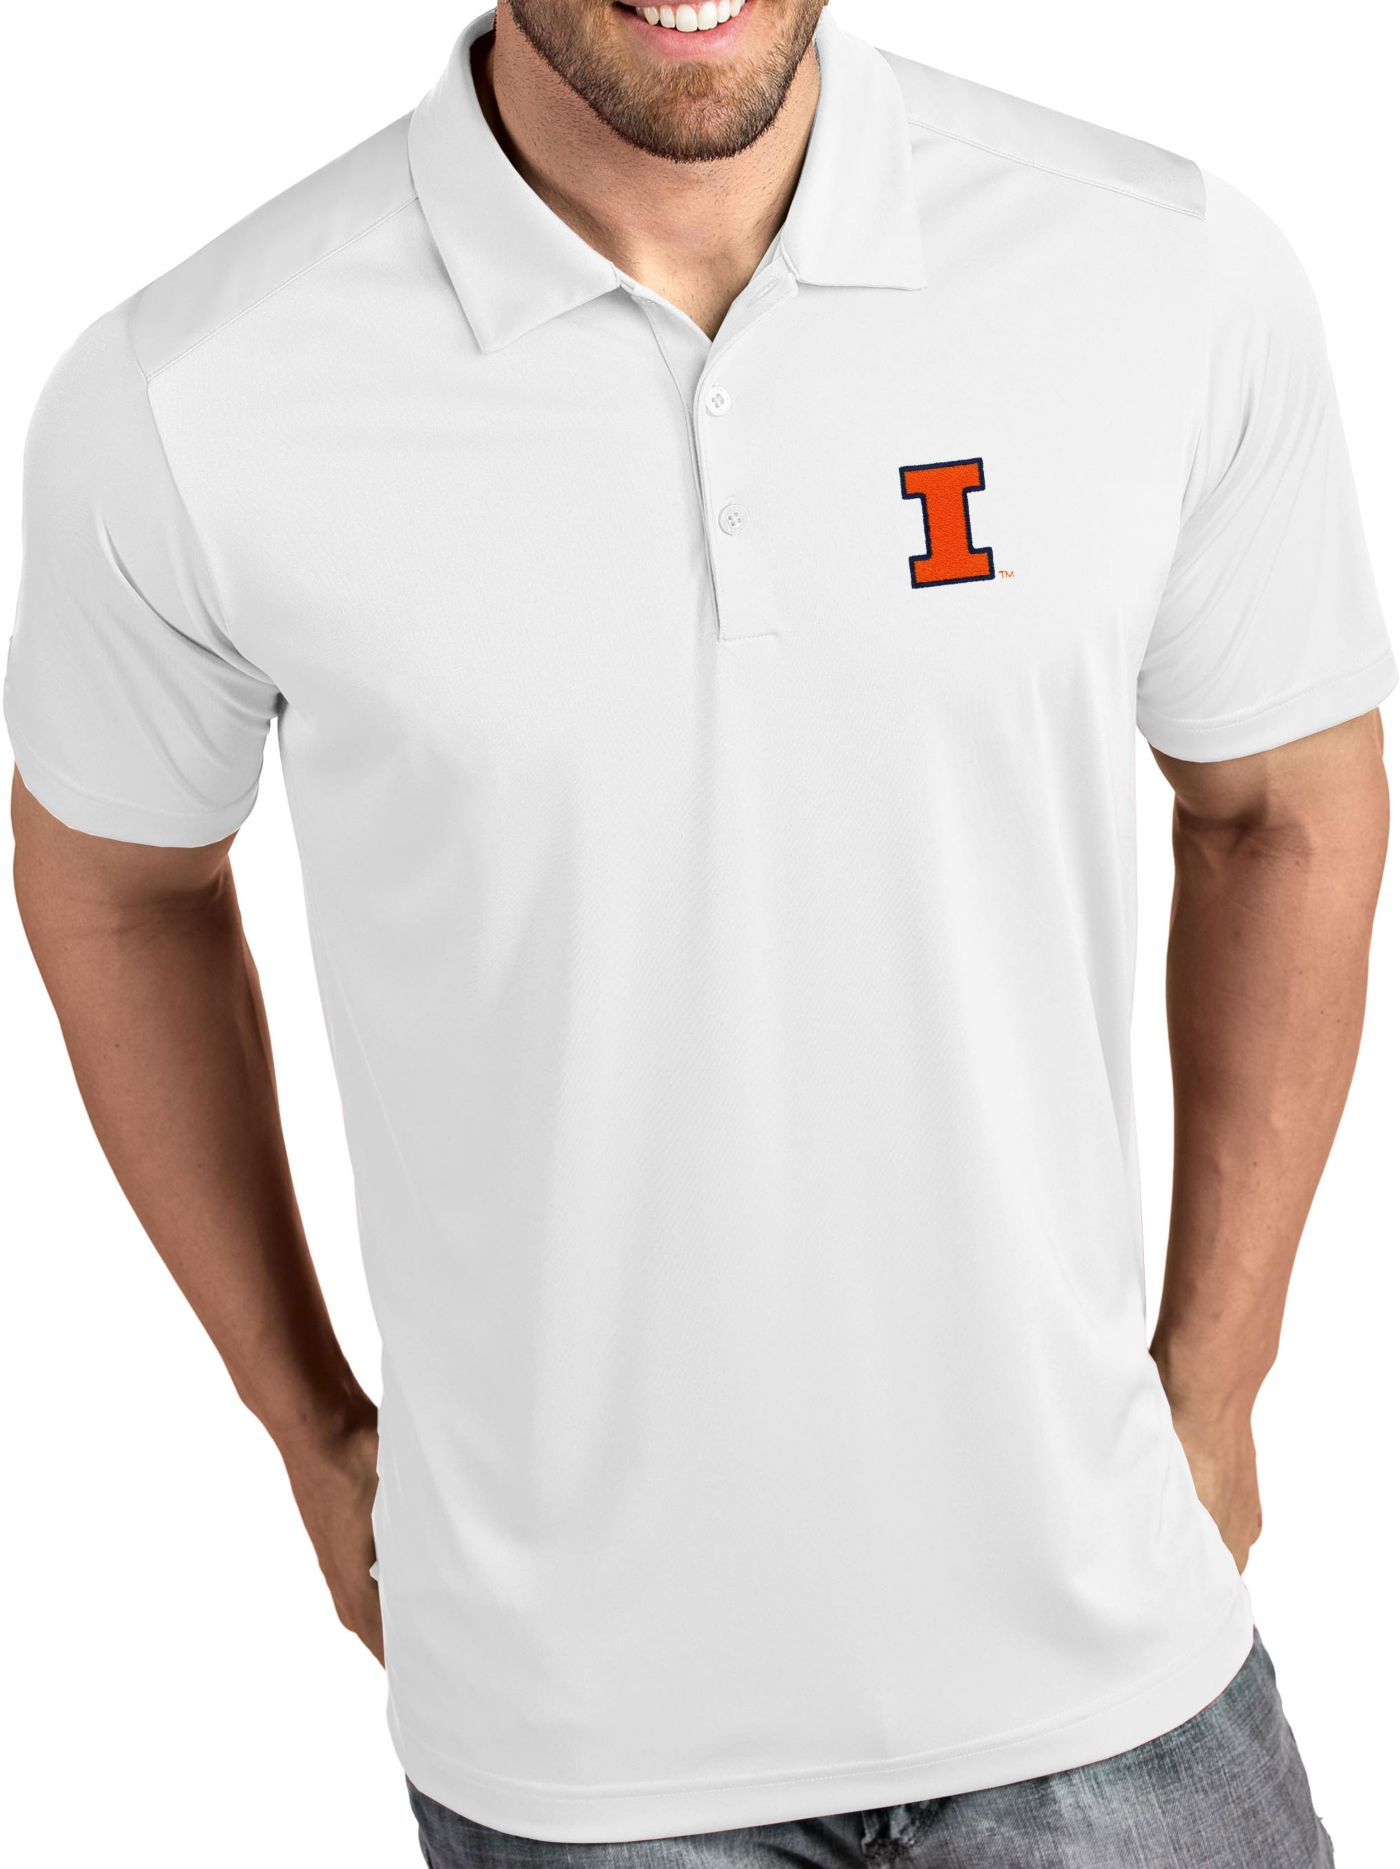 Antigua Men's Illinois Fighting Illini Tribute Performance White Polo